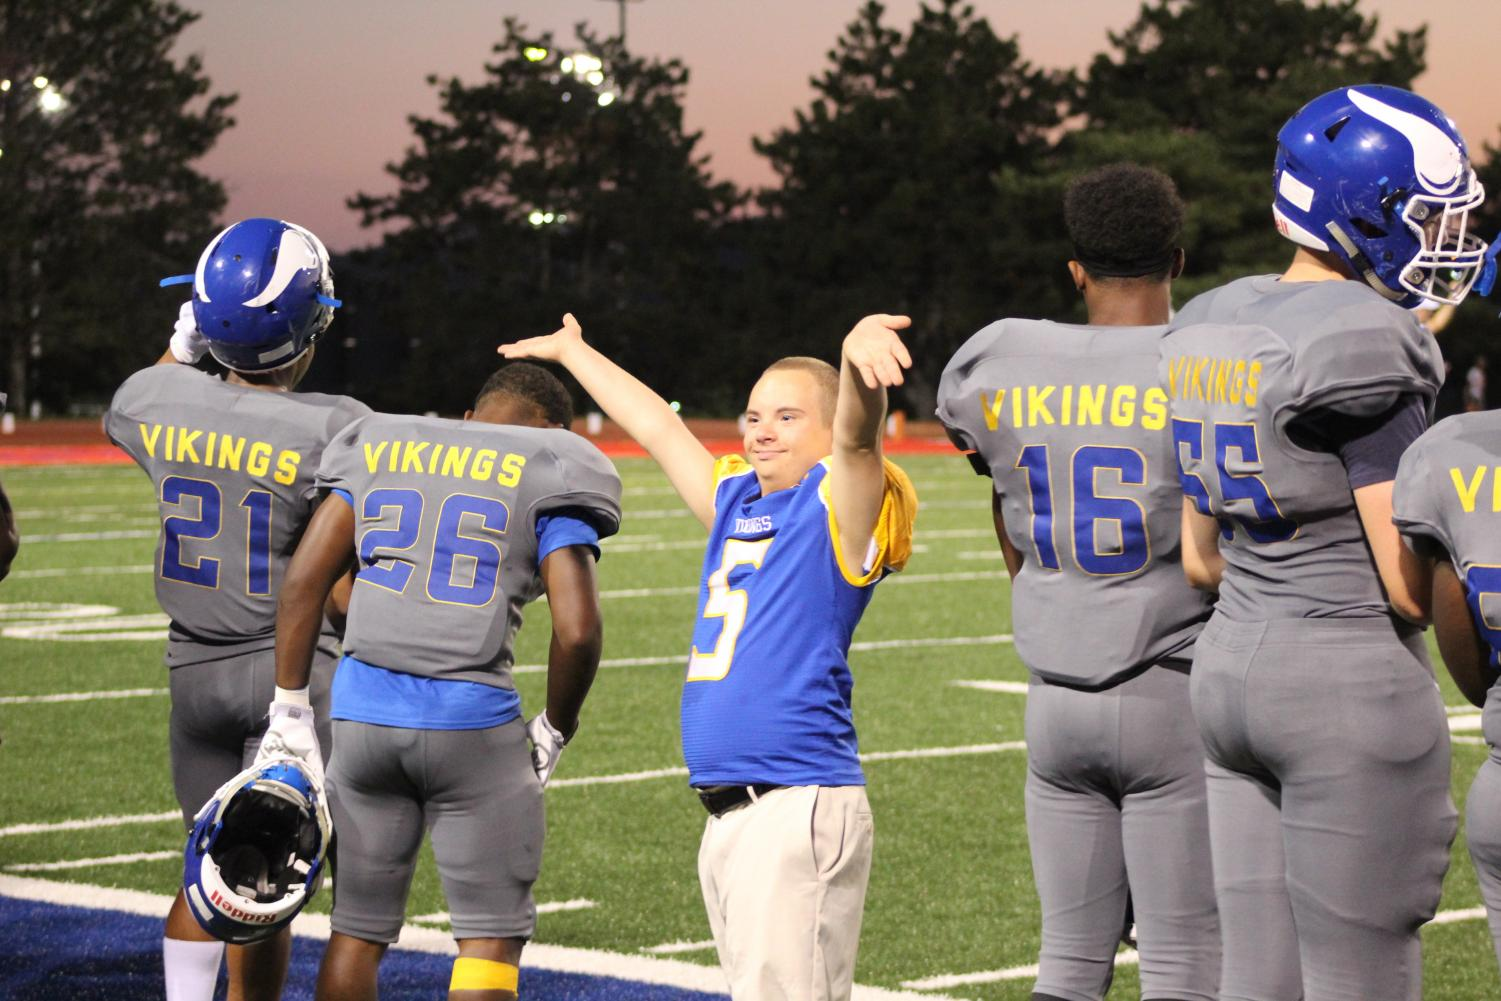 Jordan Burtzel waives his arms up and down to pump up the crowd at the football game against Burke at Northwest's Kinnick Stadium on September 14, 2018. Burtzel did this to get the crowd into the game, Burtzel often did this throughout the game.  Photo by Gabby Push